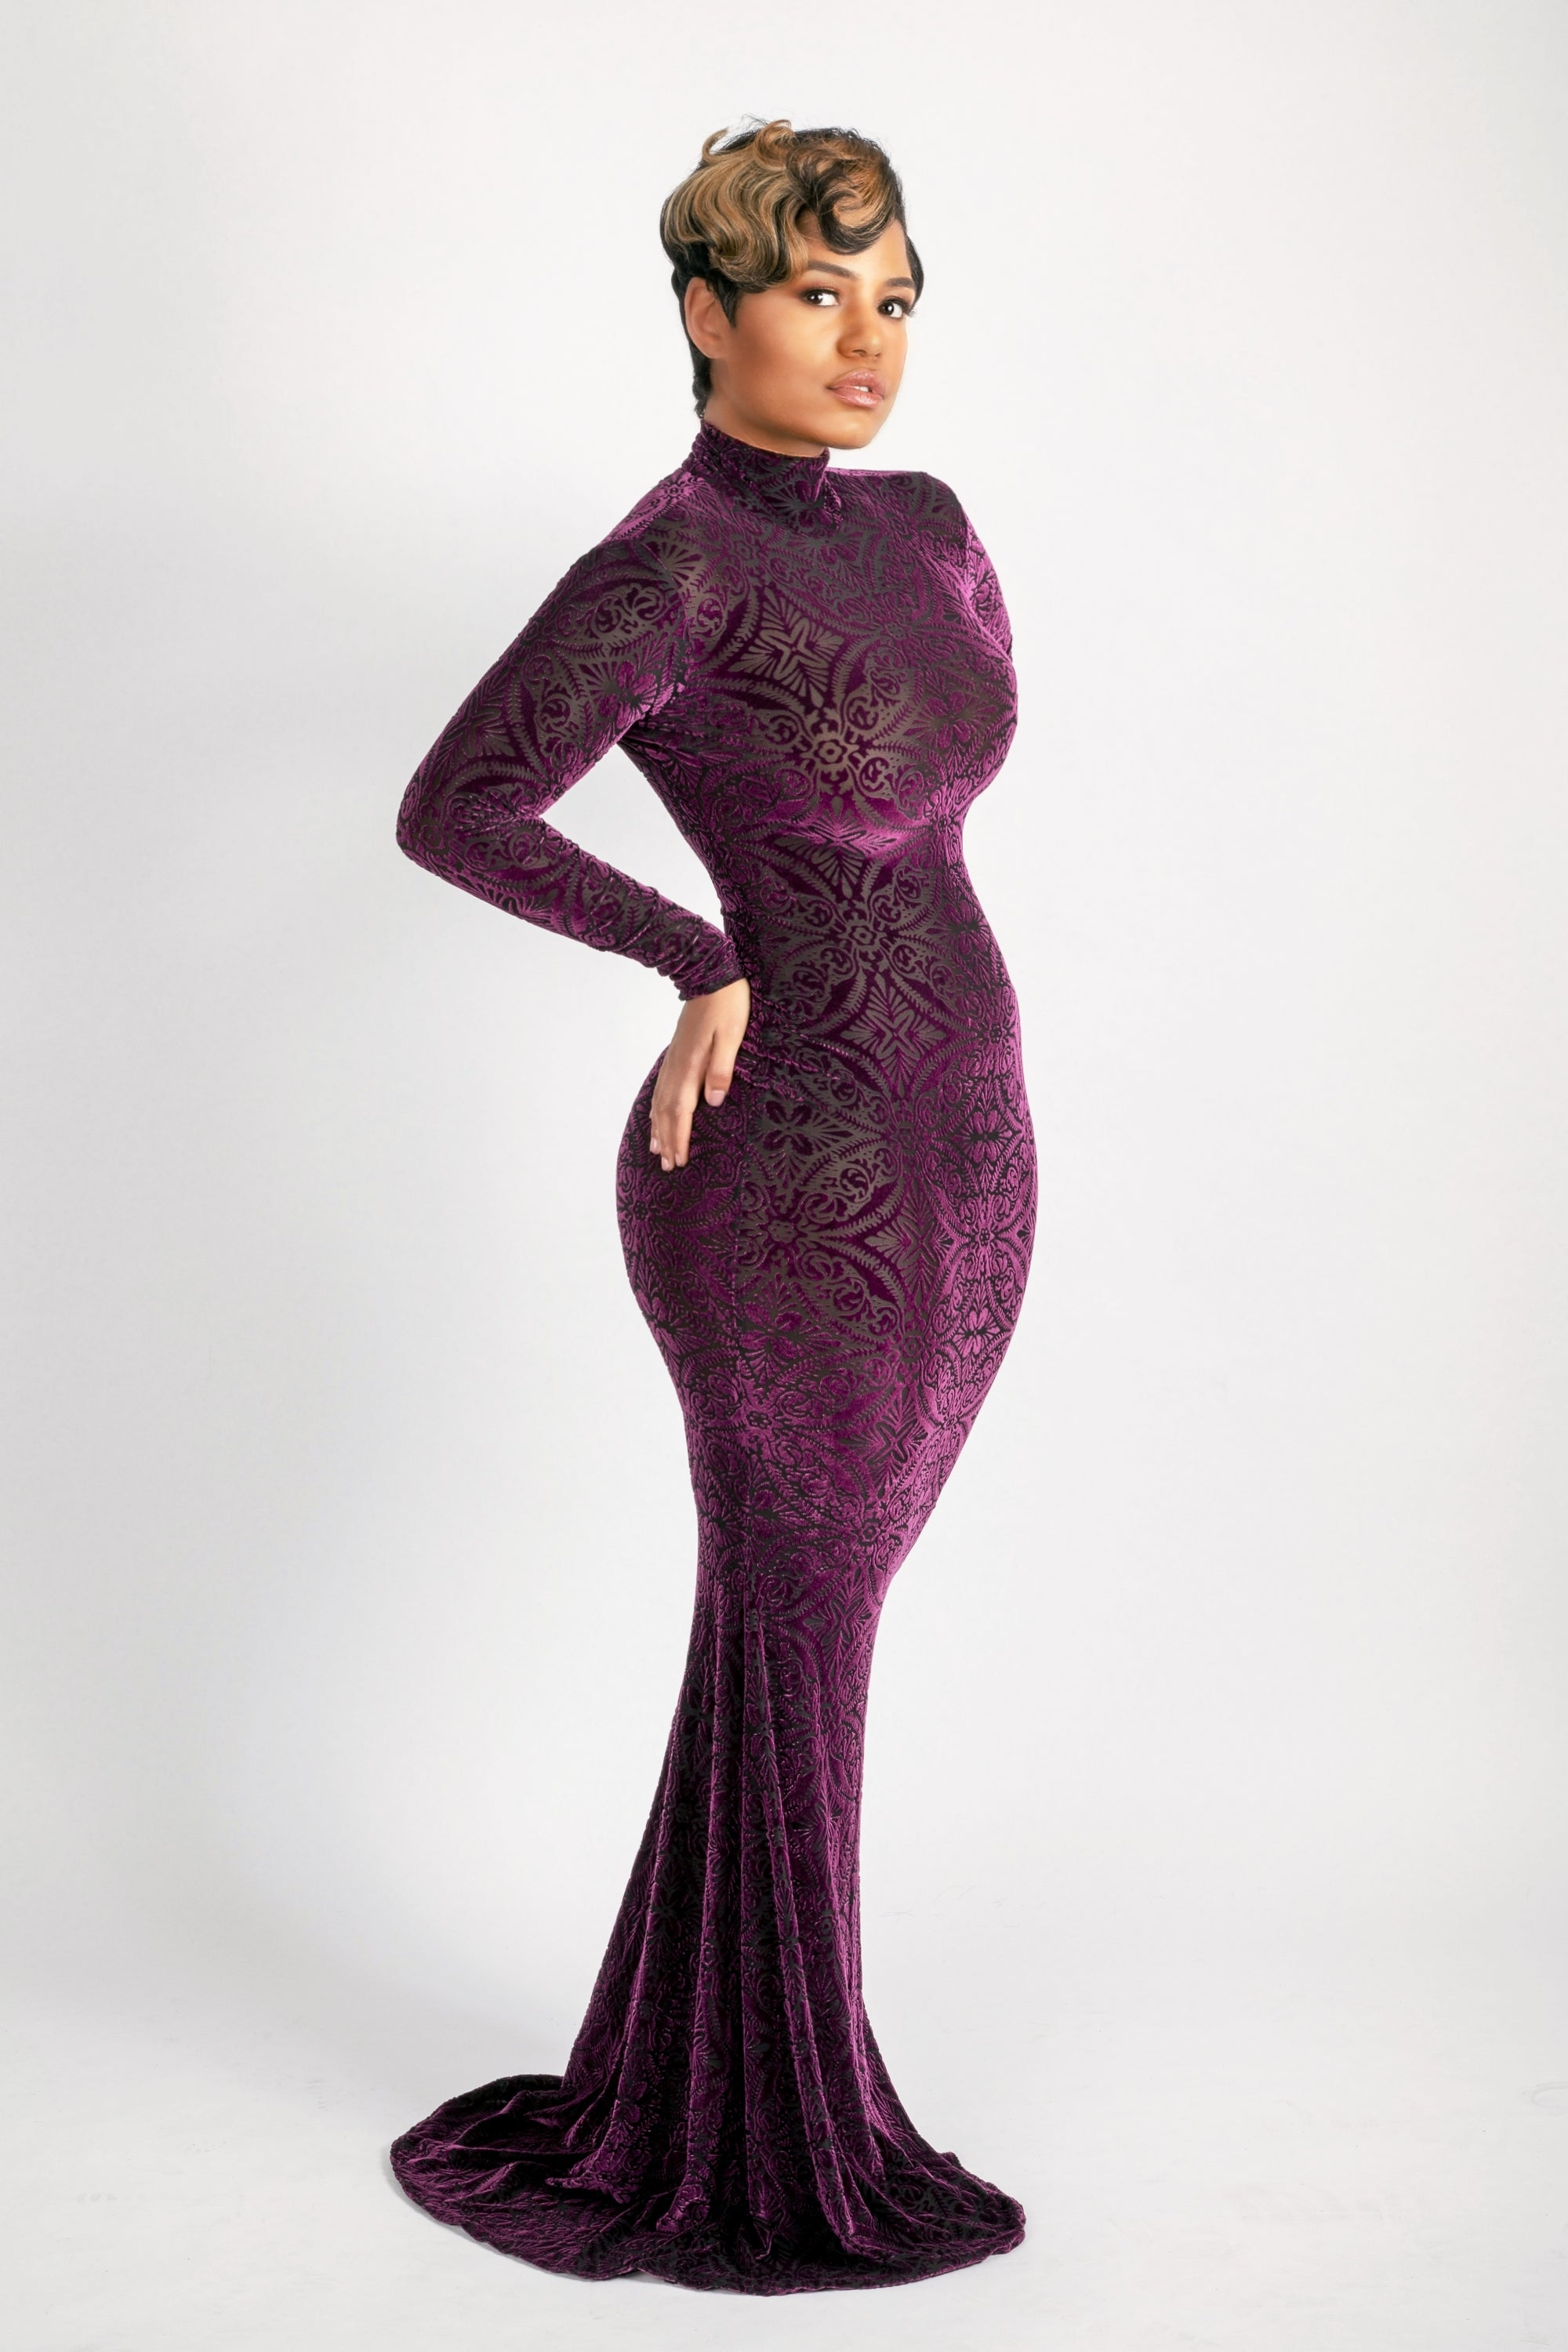 Hight neck purple burnout long dress